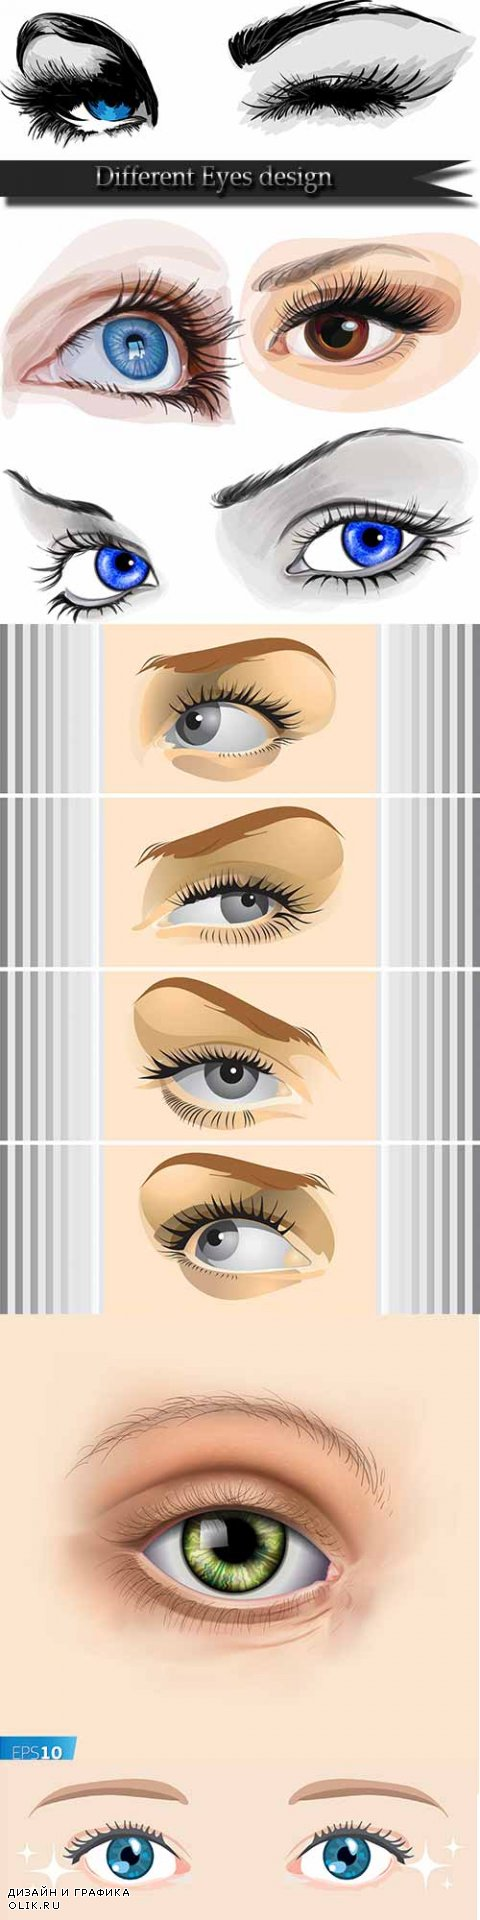 Different Eyes design vector